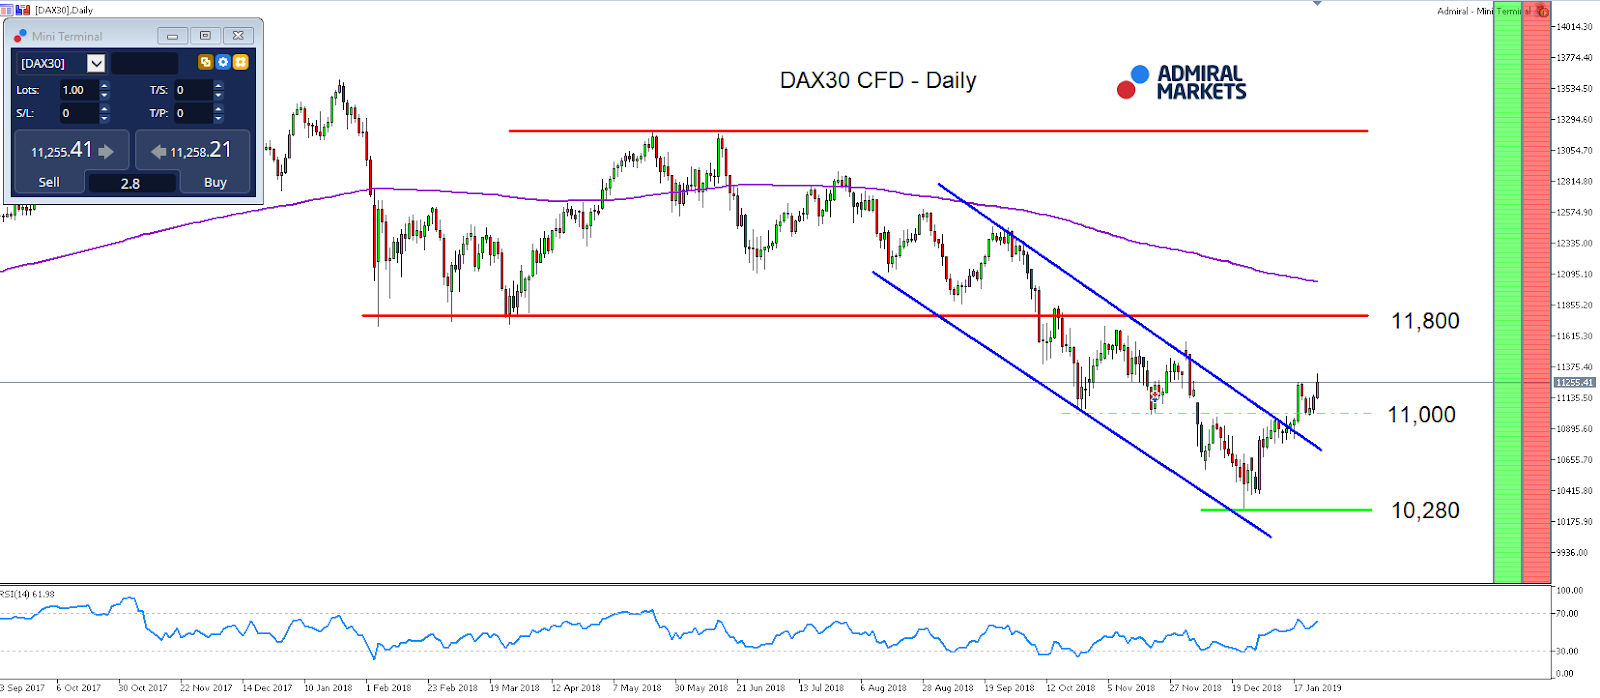 DAX30 movement between September 29, 2017 and January 25, 2019